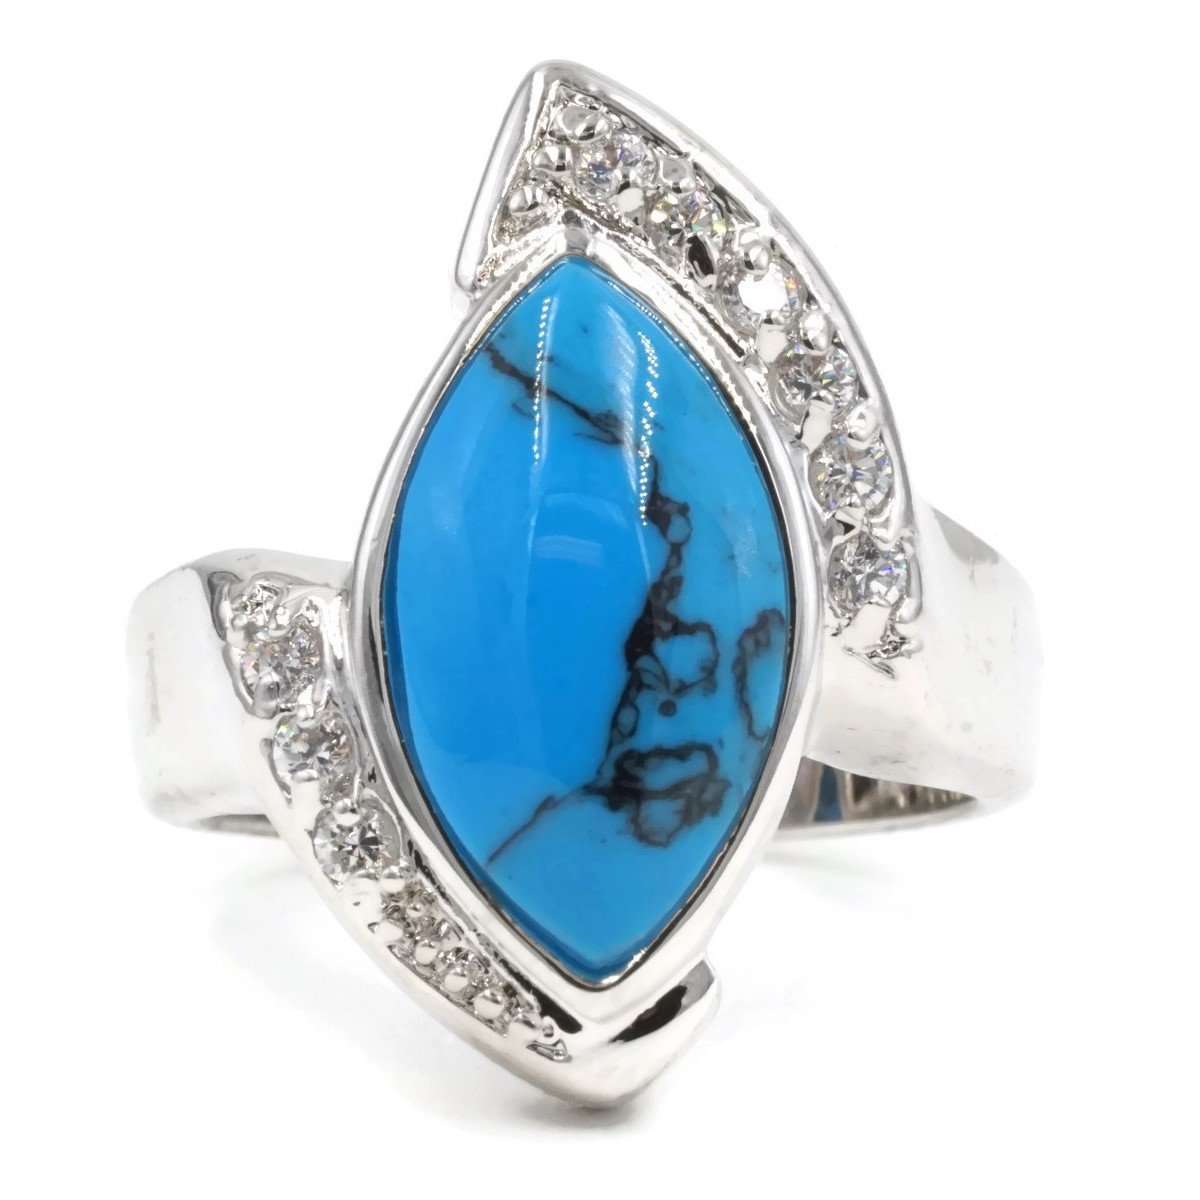 Asymmetrical Simulated Turquoise Clear Stones Ring